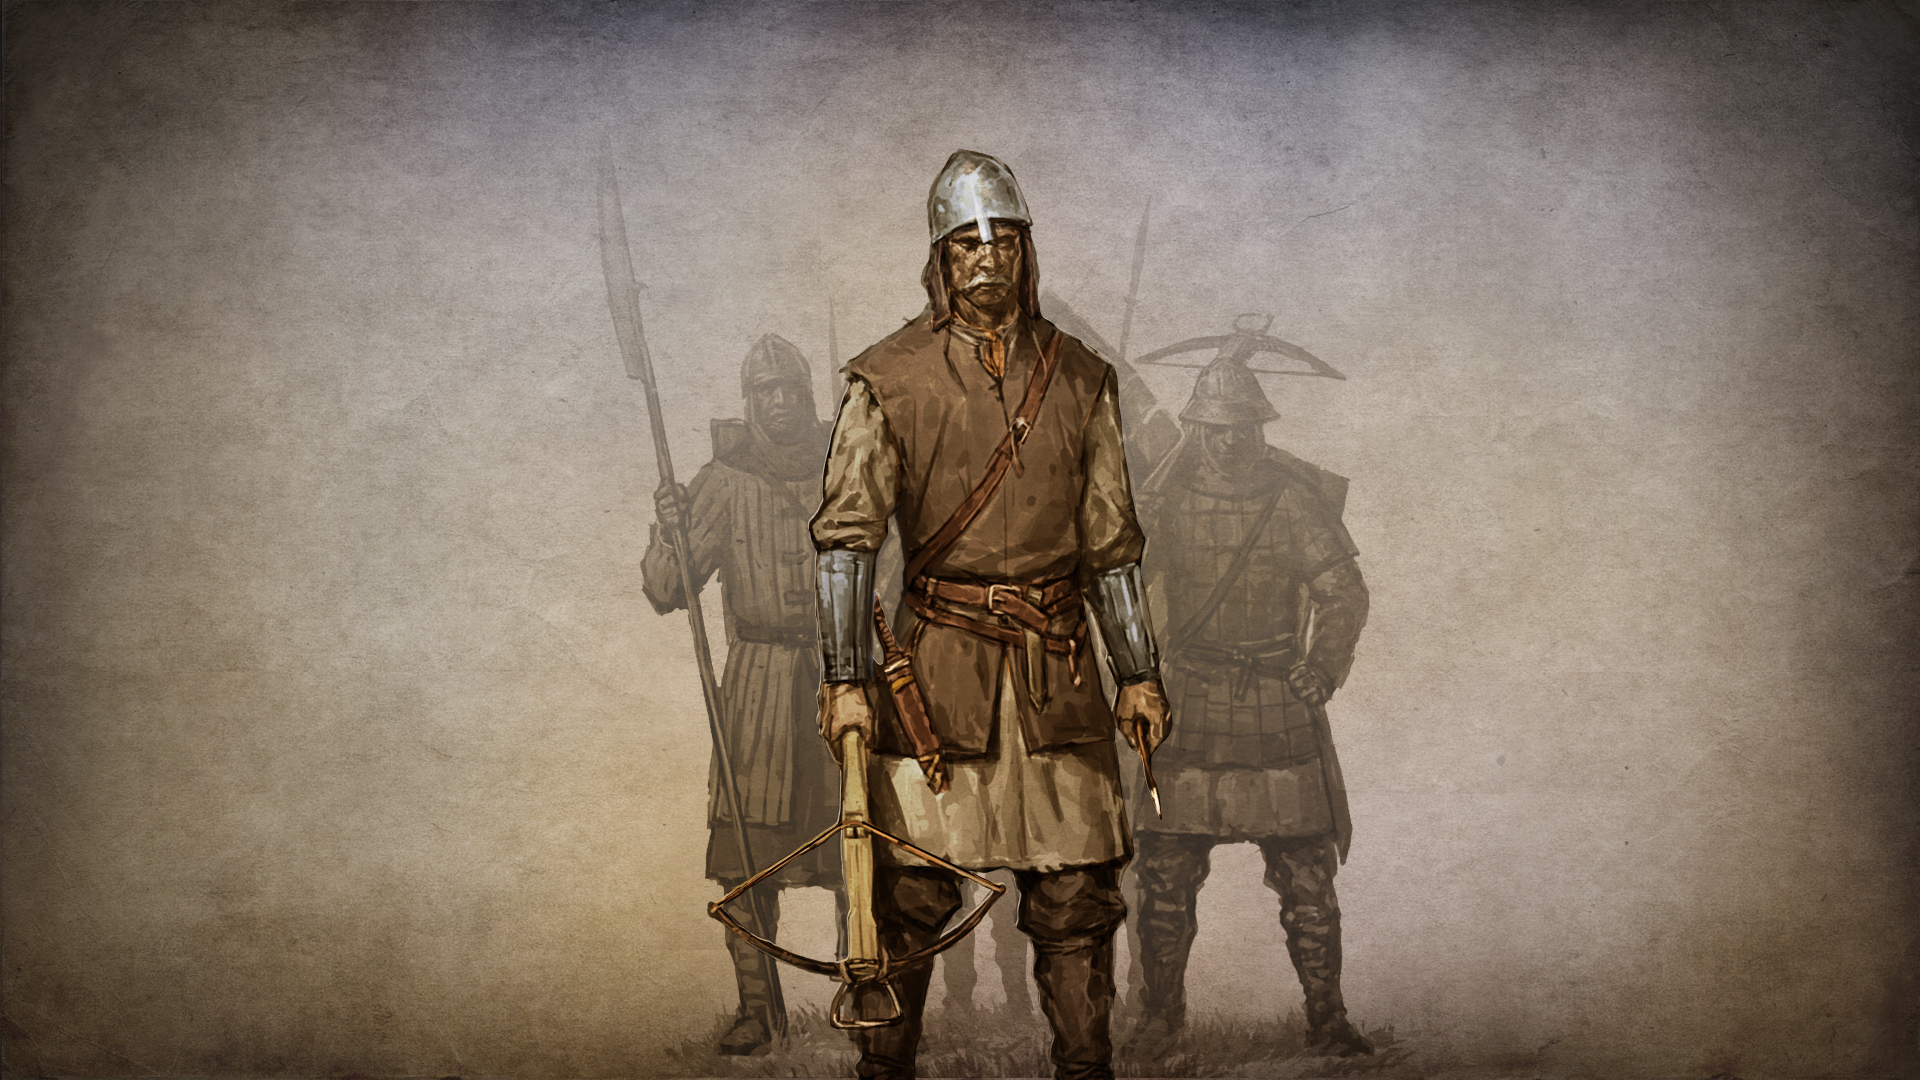 MOUNT AND BLADE fantasy warrior weapon f wallpaper 1920x1080 1920x1080